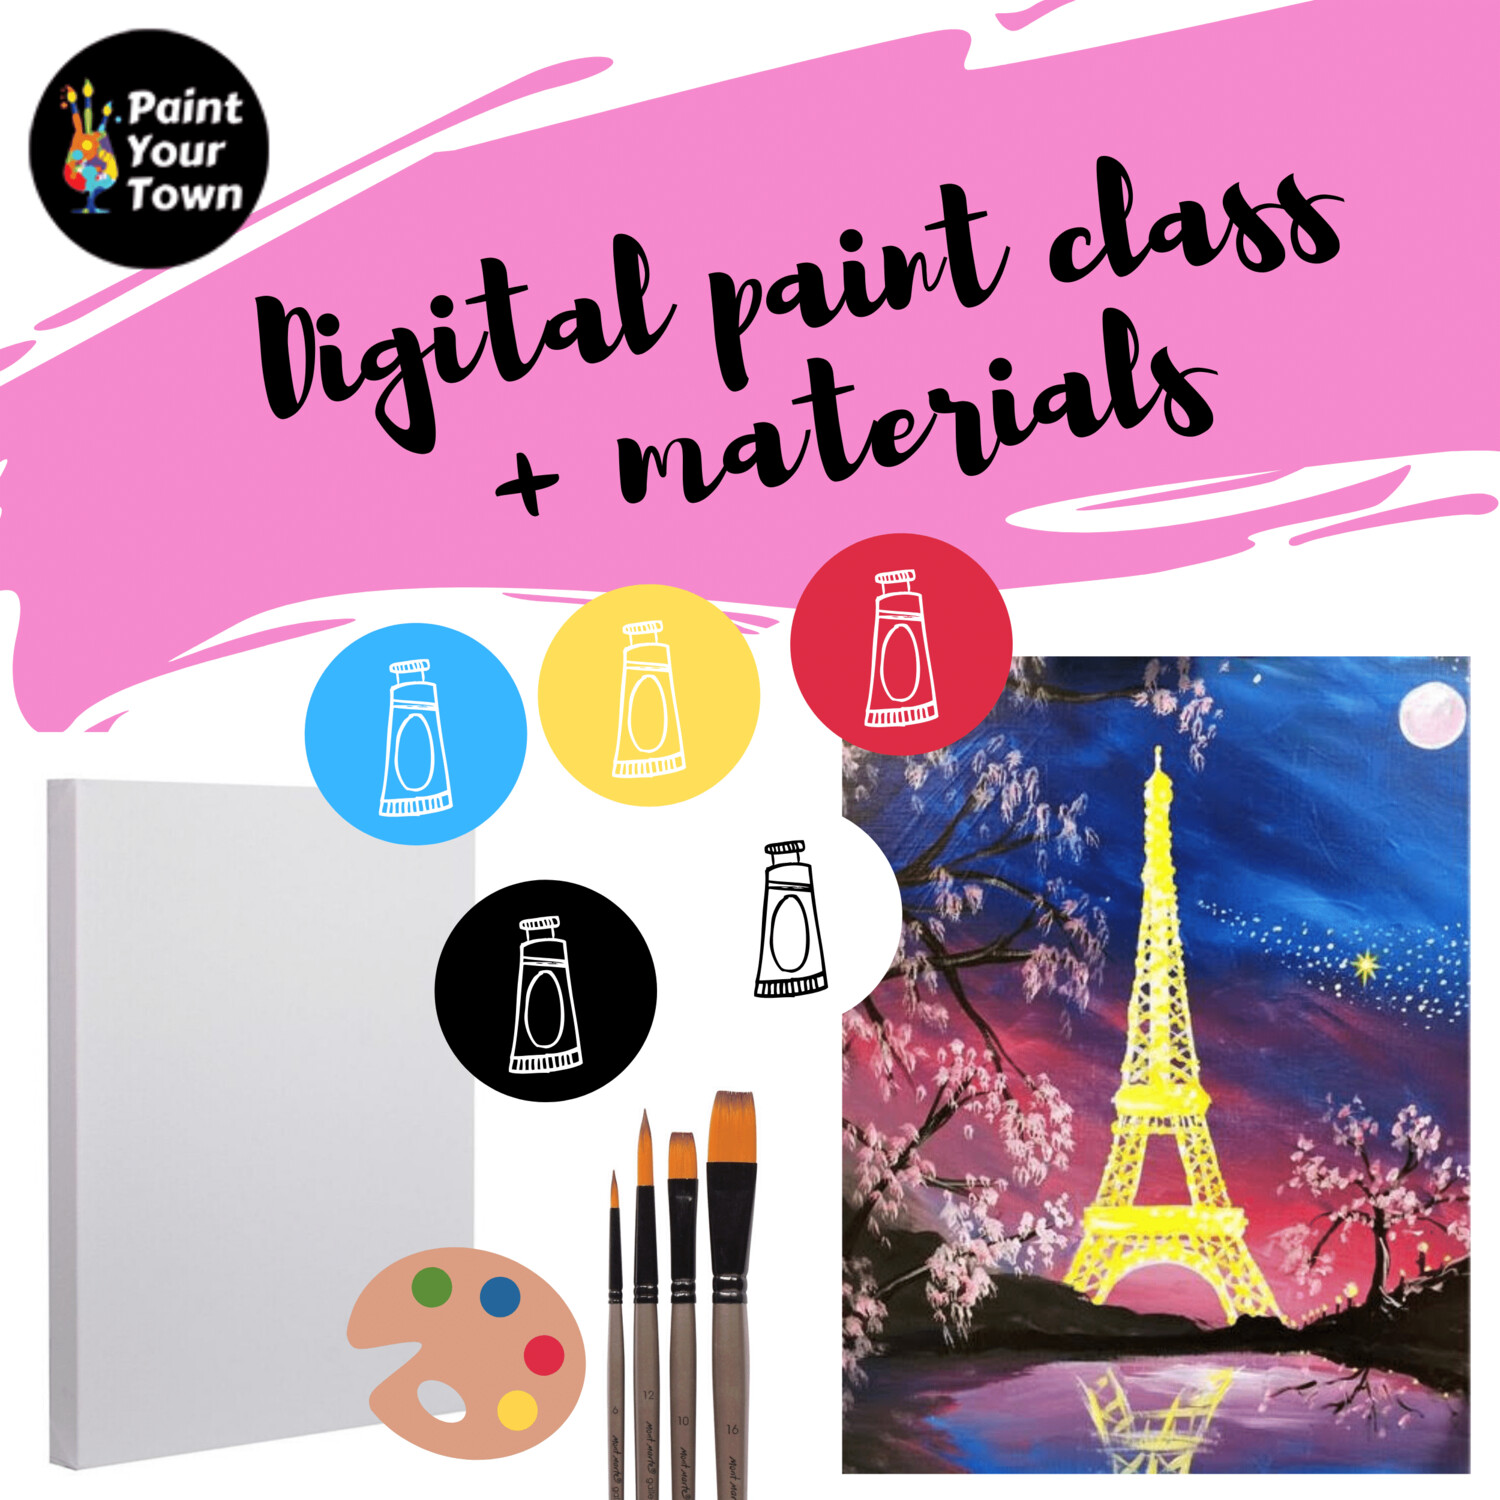 Eiffel Tower - Virtual class  + written instructions + supplies